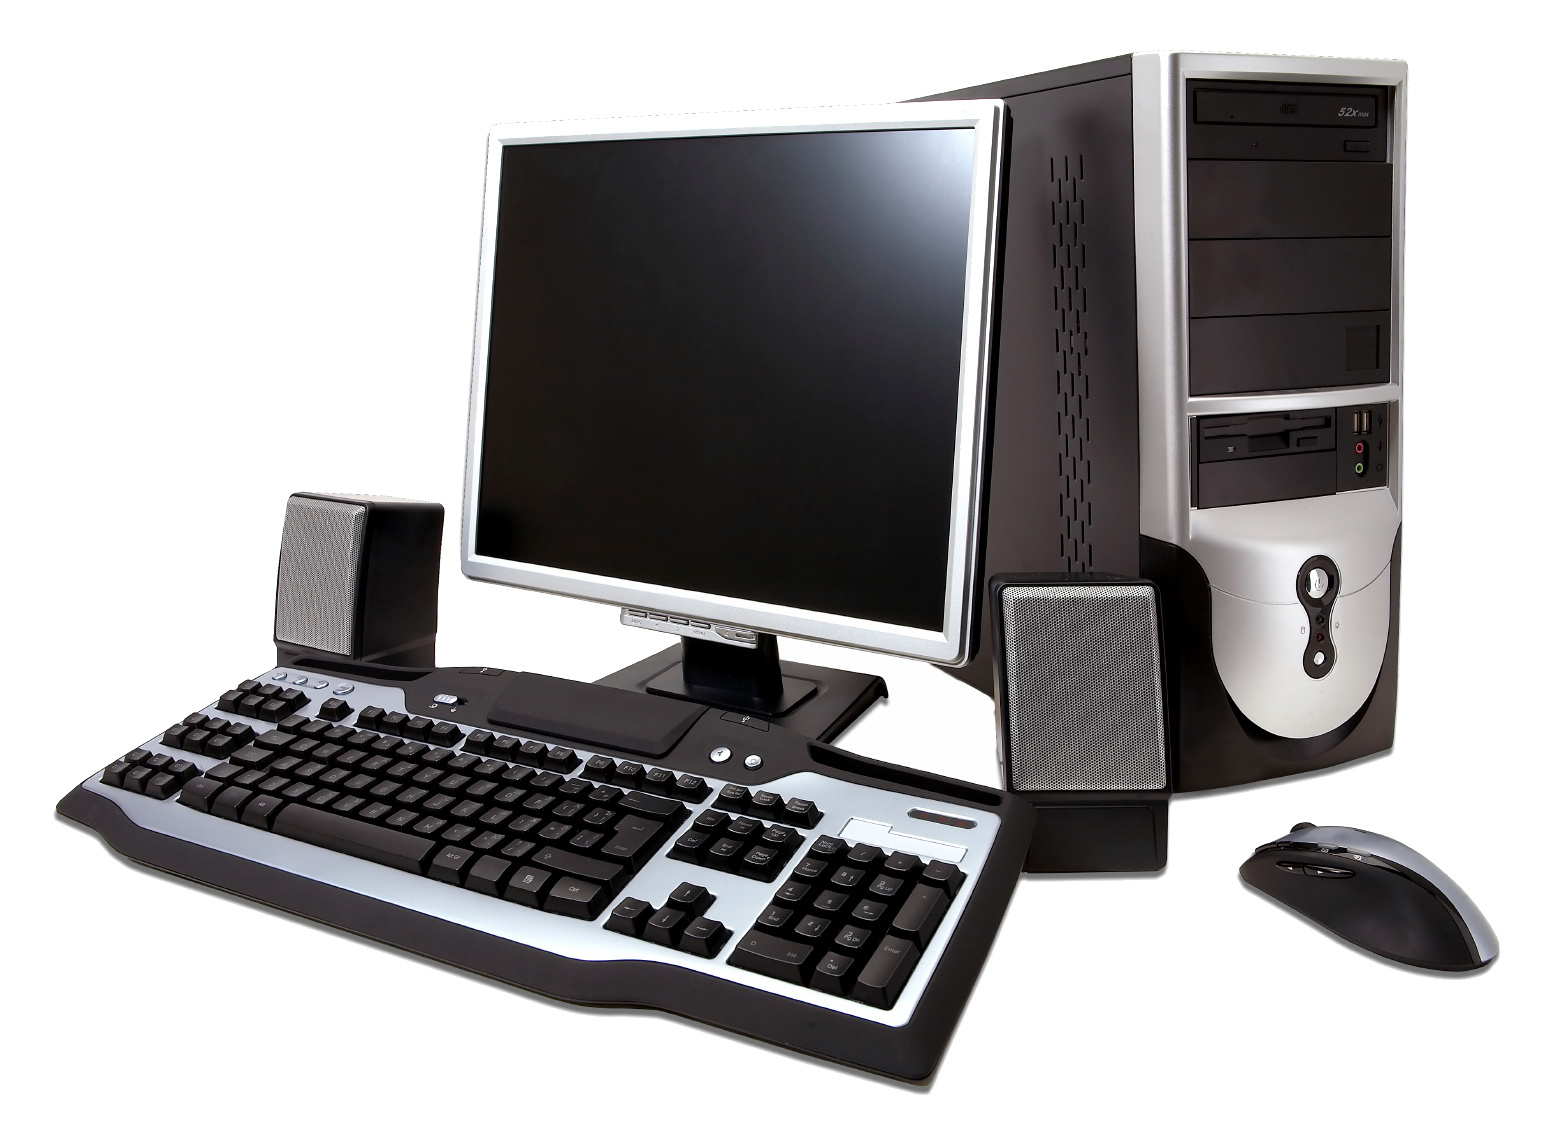 computers desktop computer and better operating Desktop pcs from ebuyercom with higher specifications and delivering a better performance than laptops and tablets desktop pcs are ideal for work and as the main computer at home.